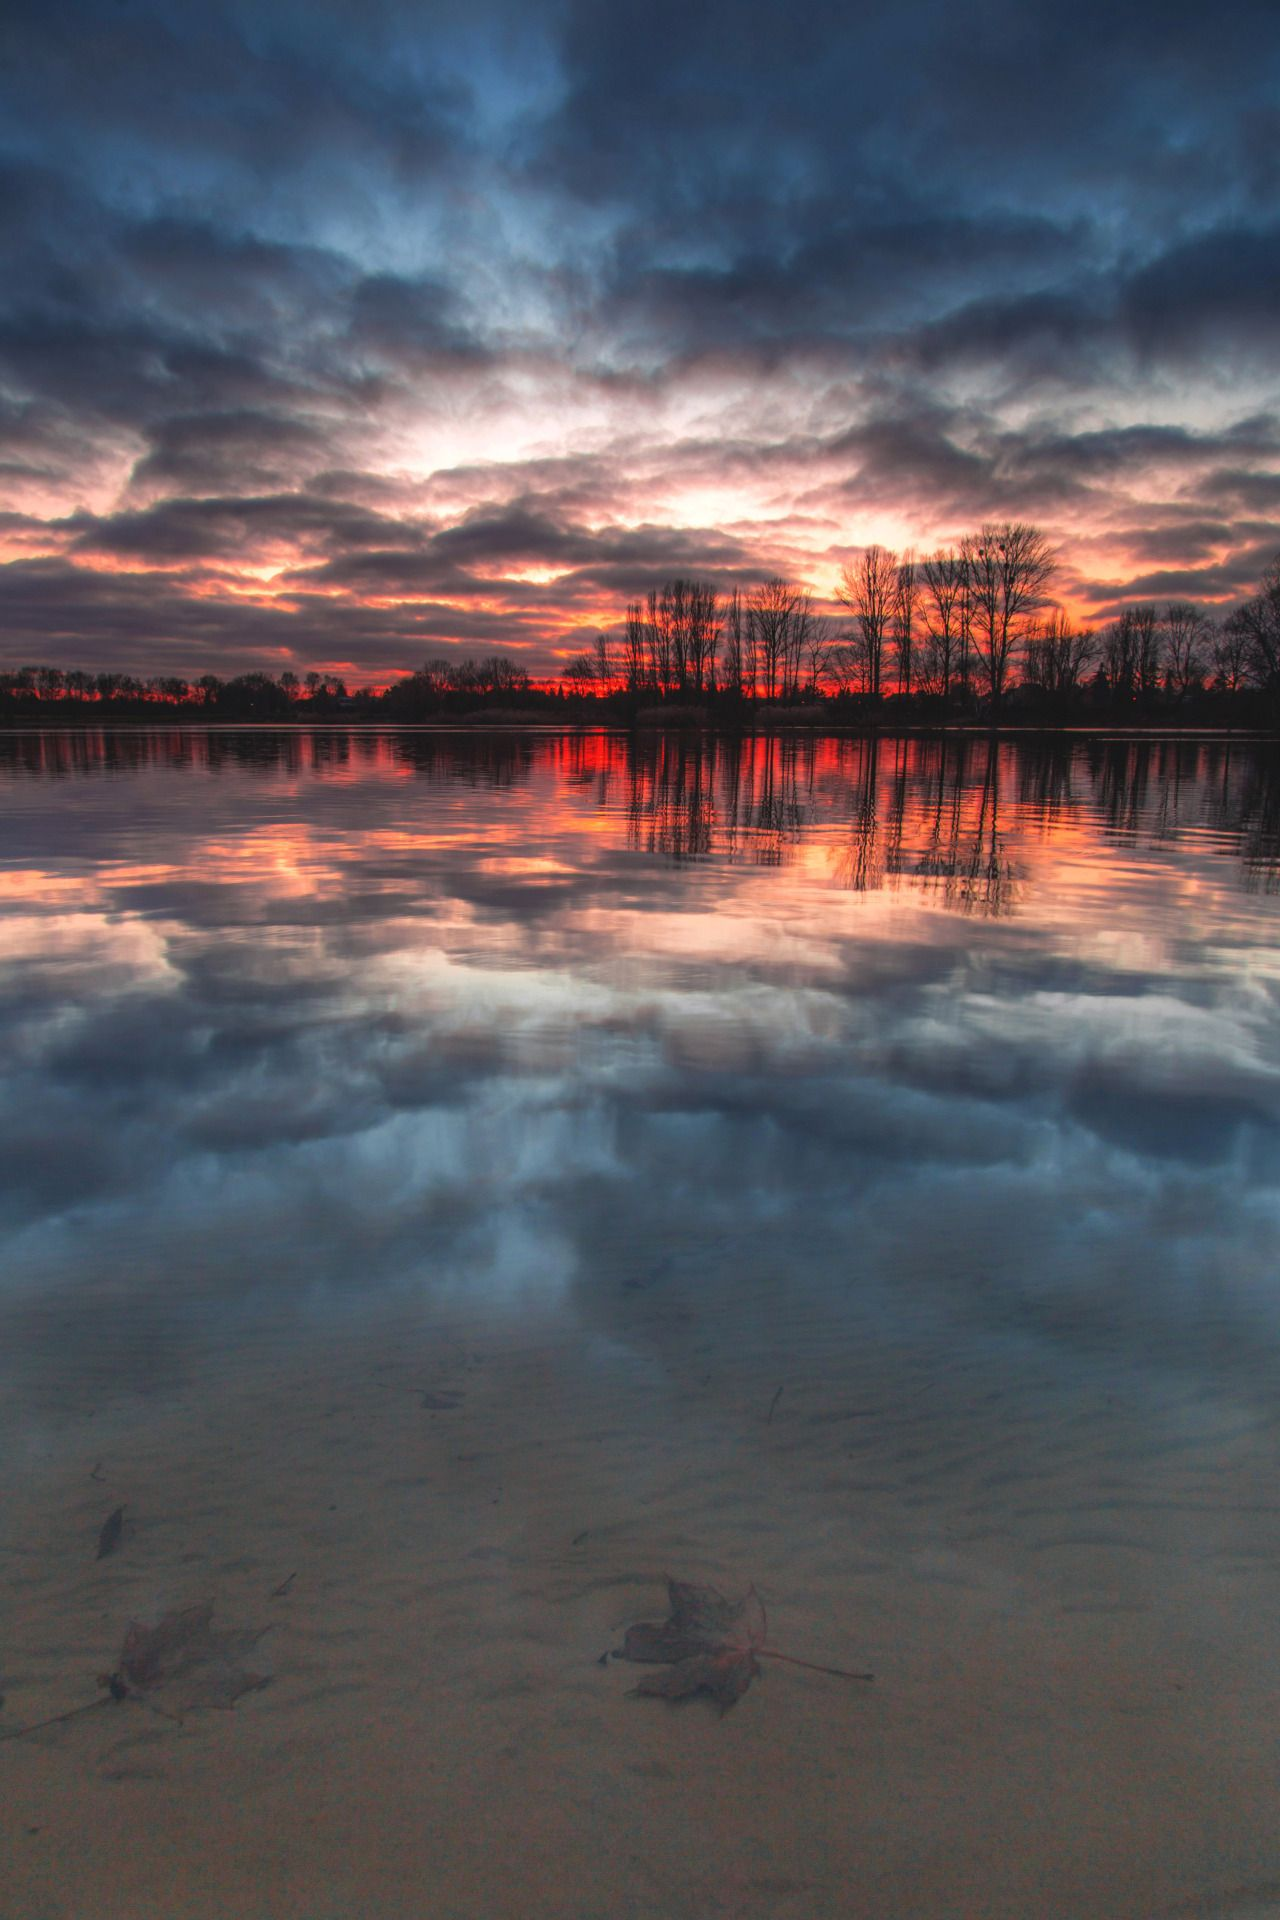 Sunken by Denny Bitte - #berlin #Cloudy #Germany #Lake, #Landscape #Leaves #Nature #on #ORIGINAL: #Photographers #reflections #Sky #Sunset #tumblr